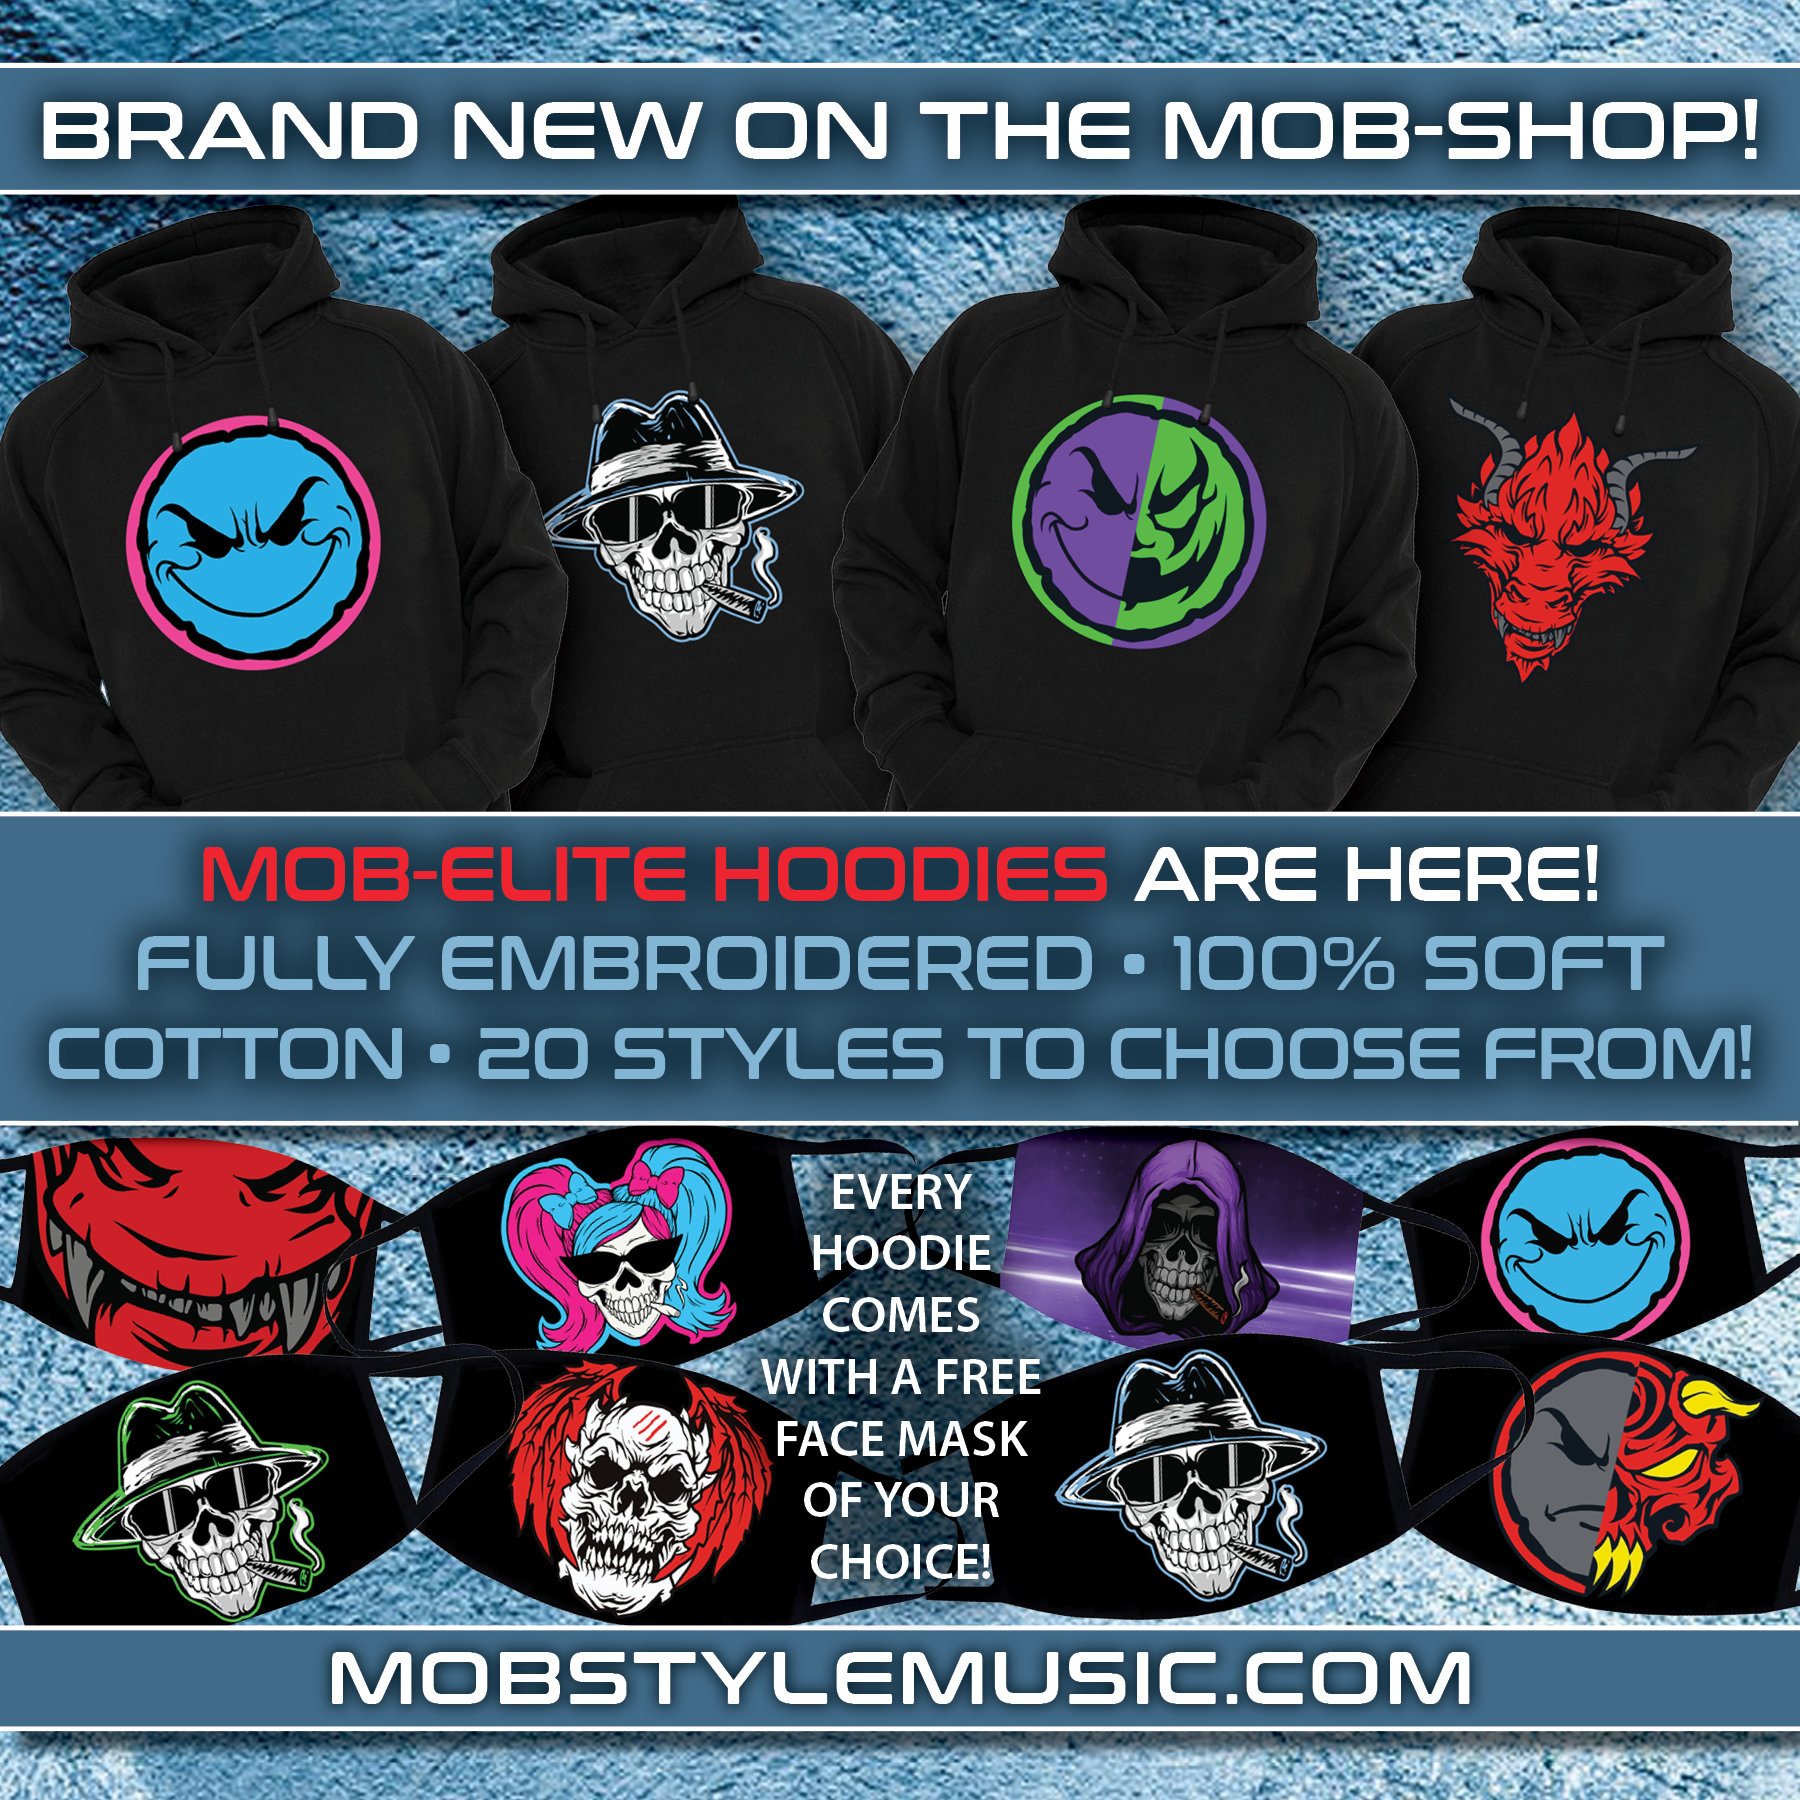 Mob-Elite Pull Over Embroidered Hoodie – 21 Styles To Choose From! Comes With FREE Face Mask Of Your Choice!